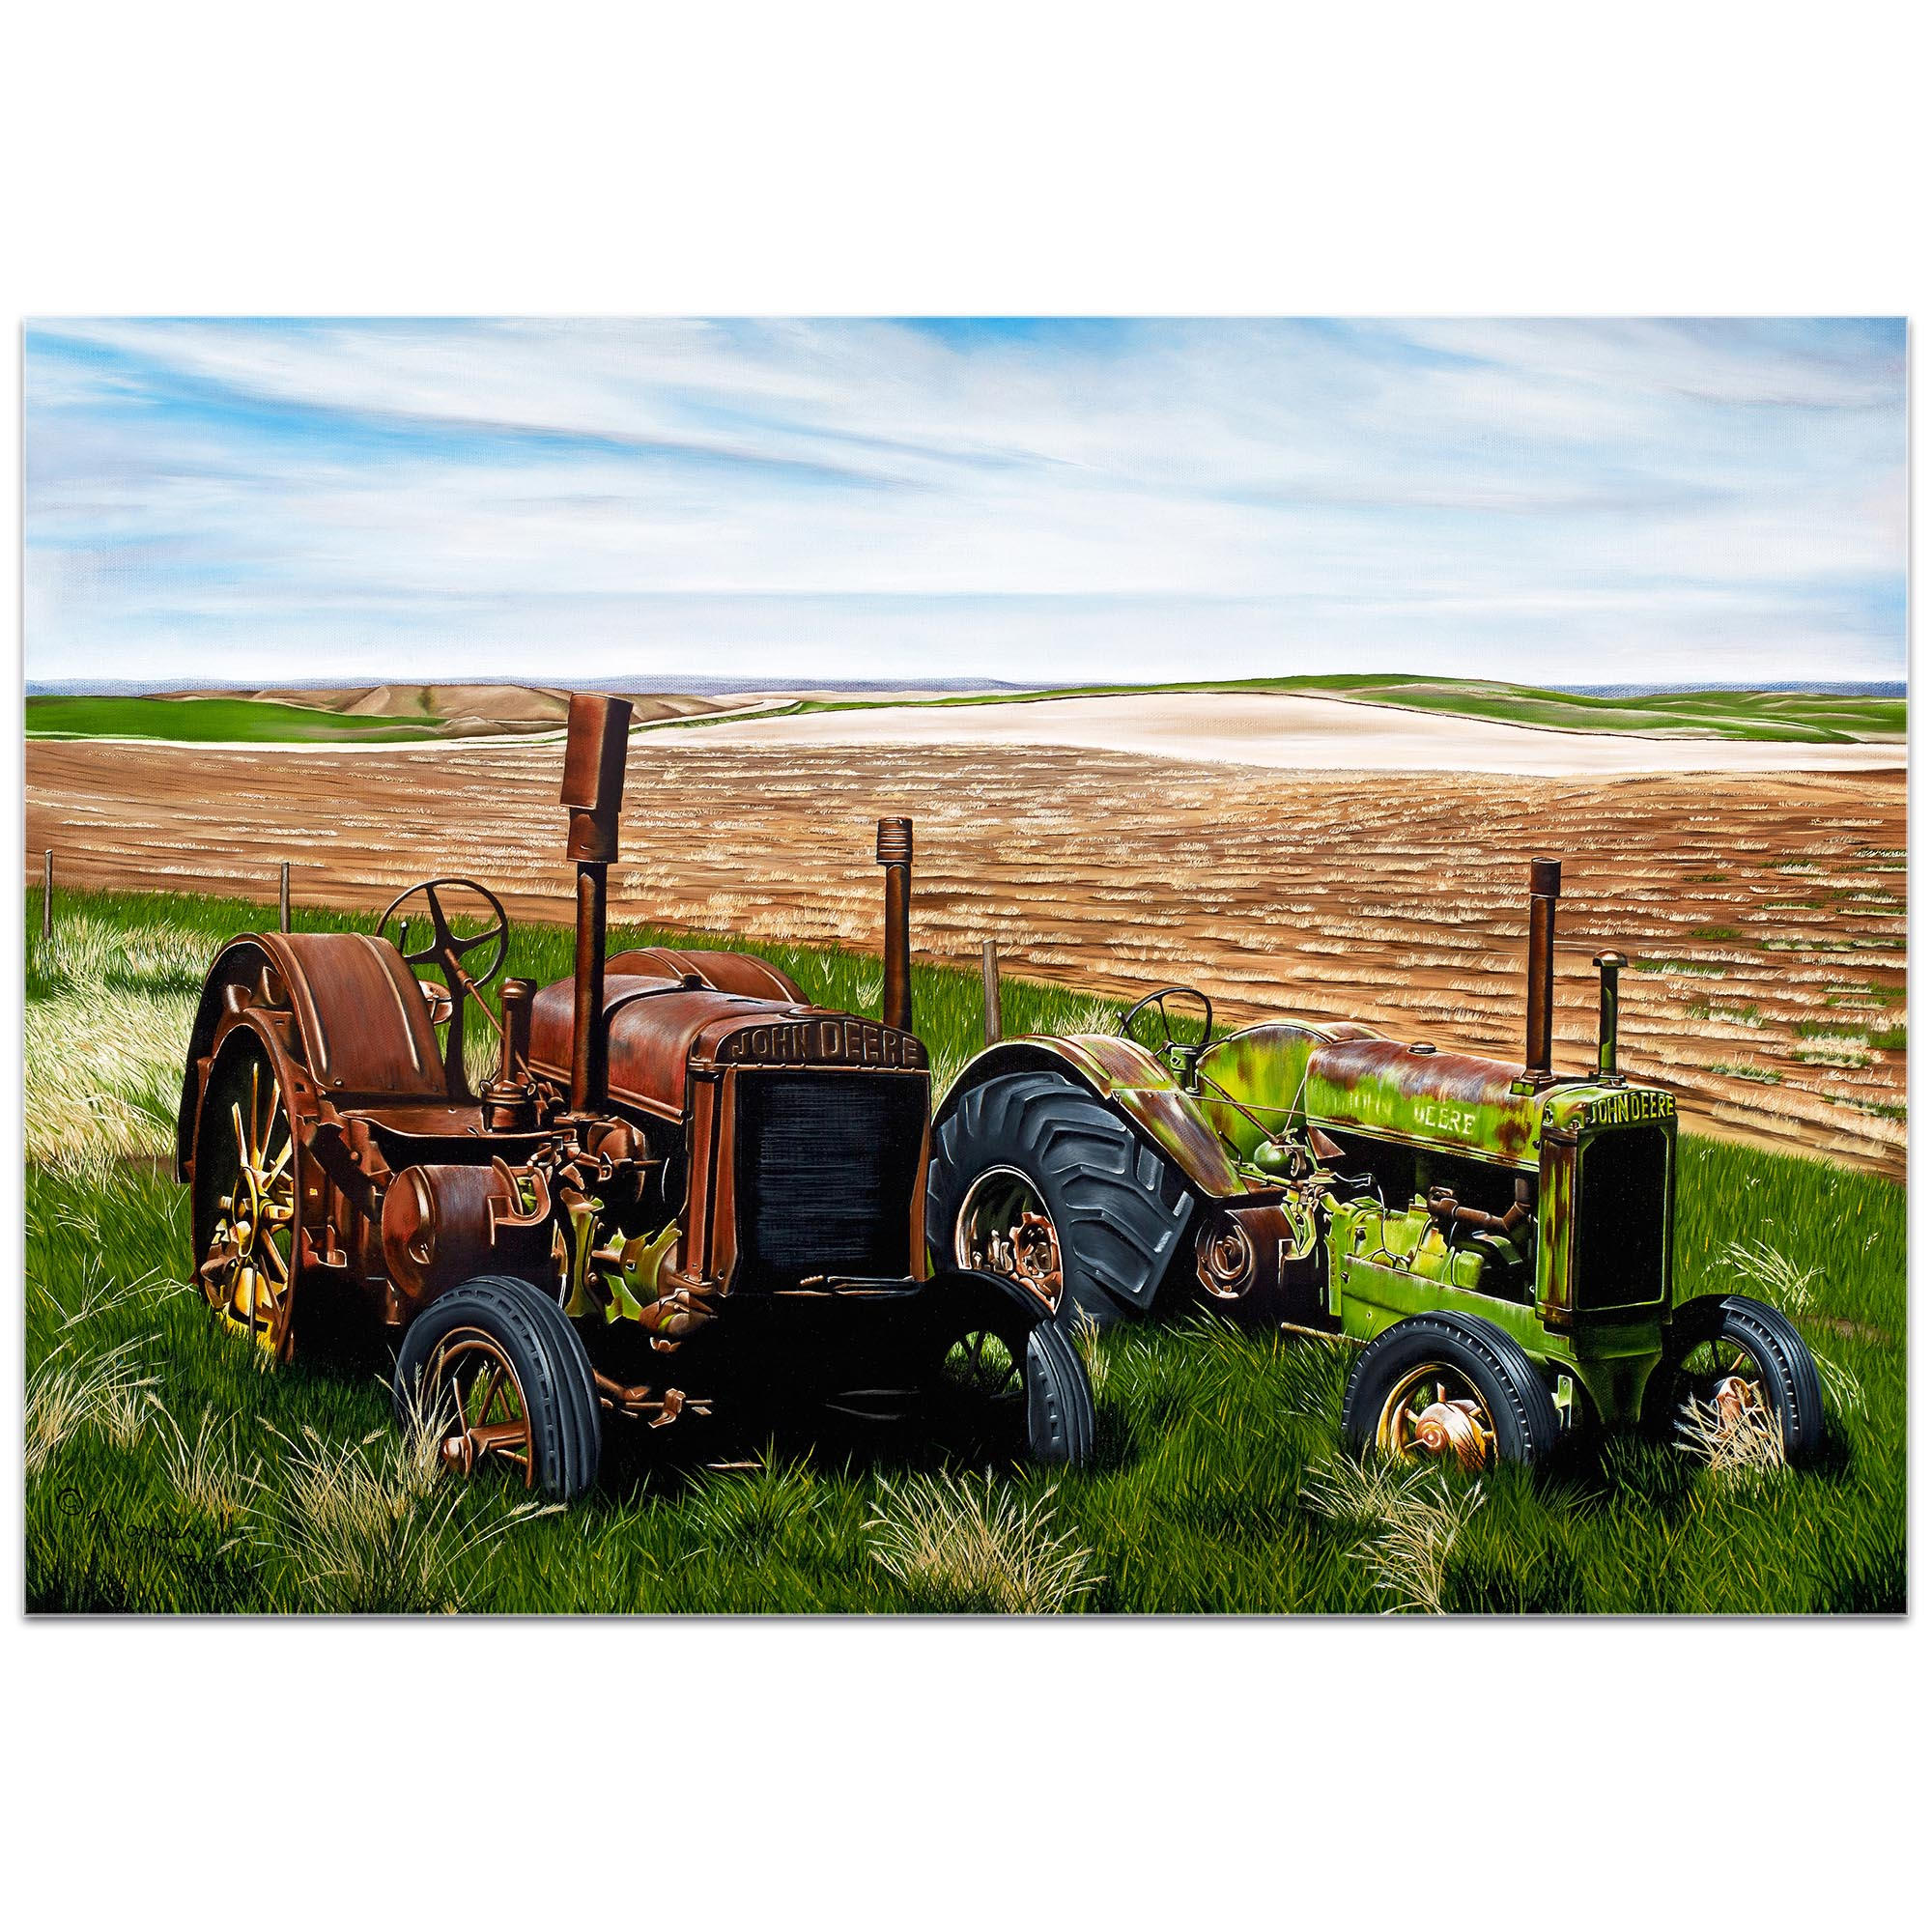 Americana Wall Art 'Two John Boys' - Classic Tractor Decor on Metal or Plexiglass - Image 2